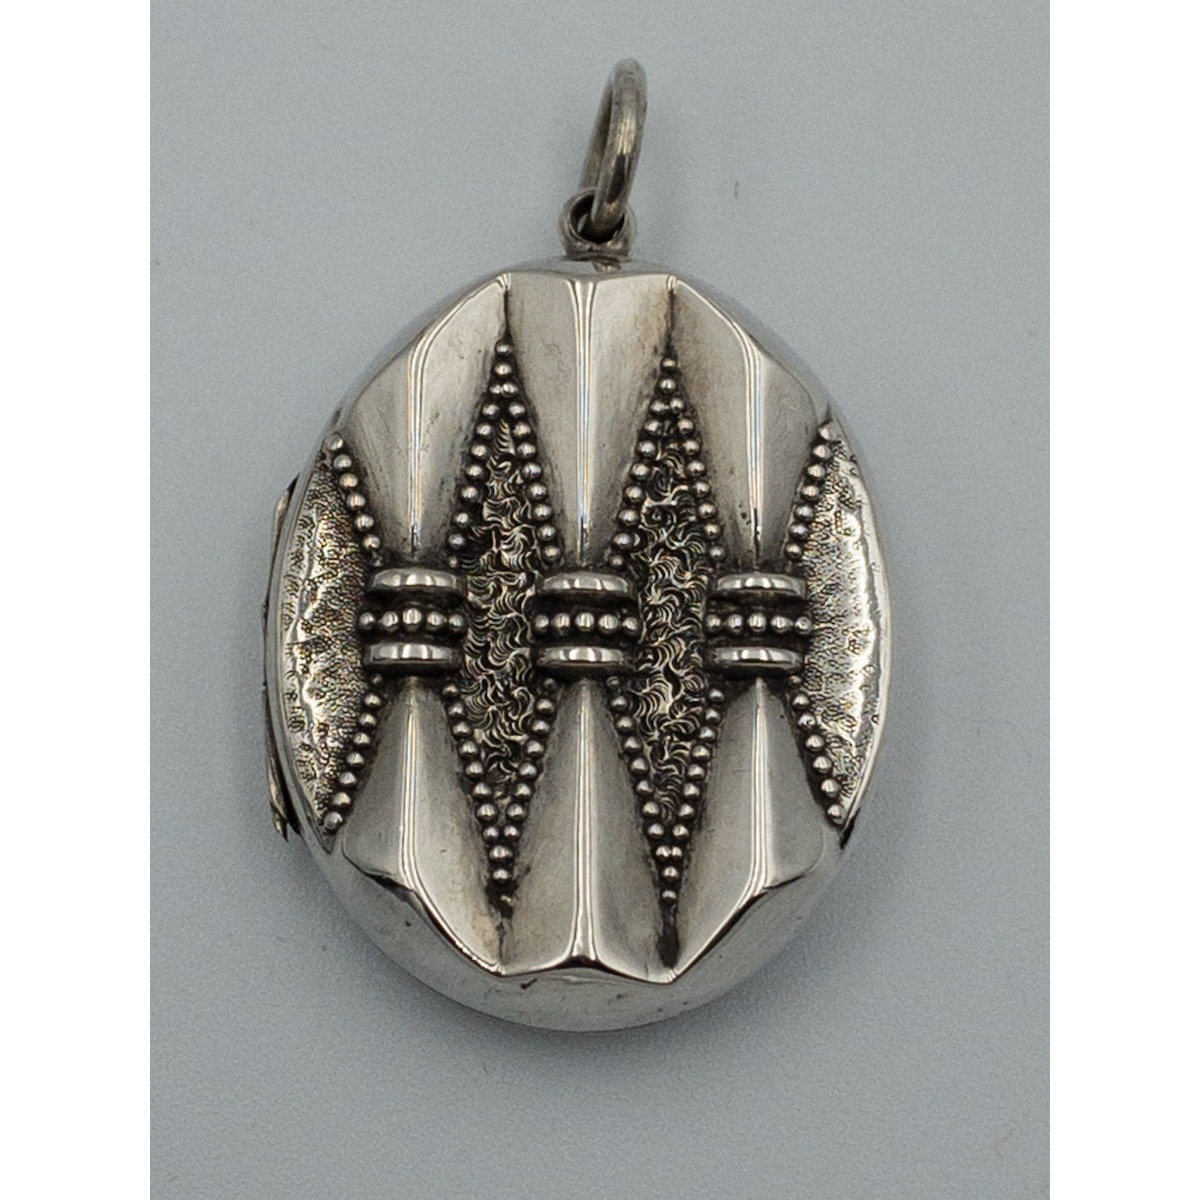 Dimensional Pleated Beaded Antique English Silver Locket